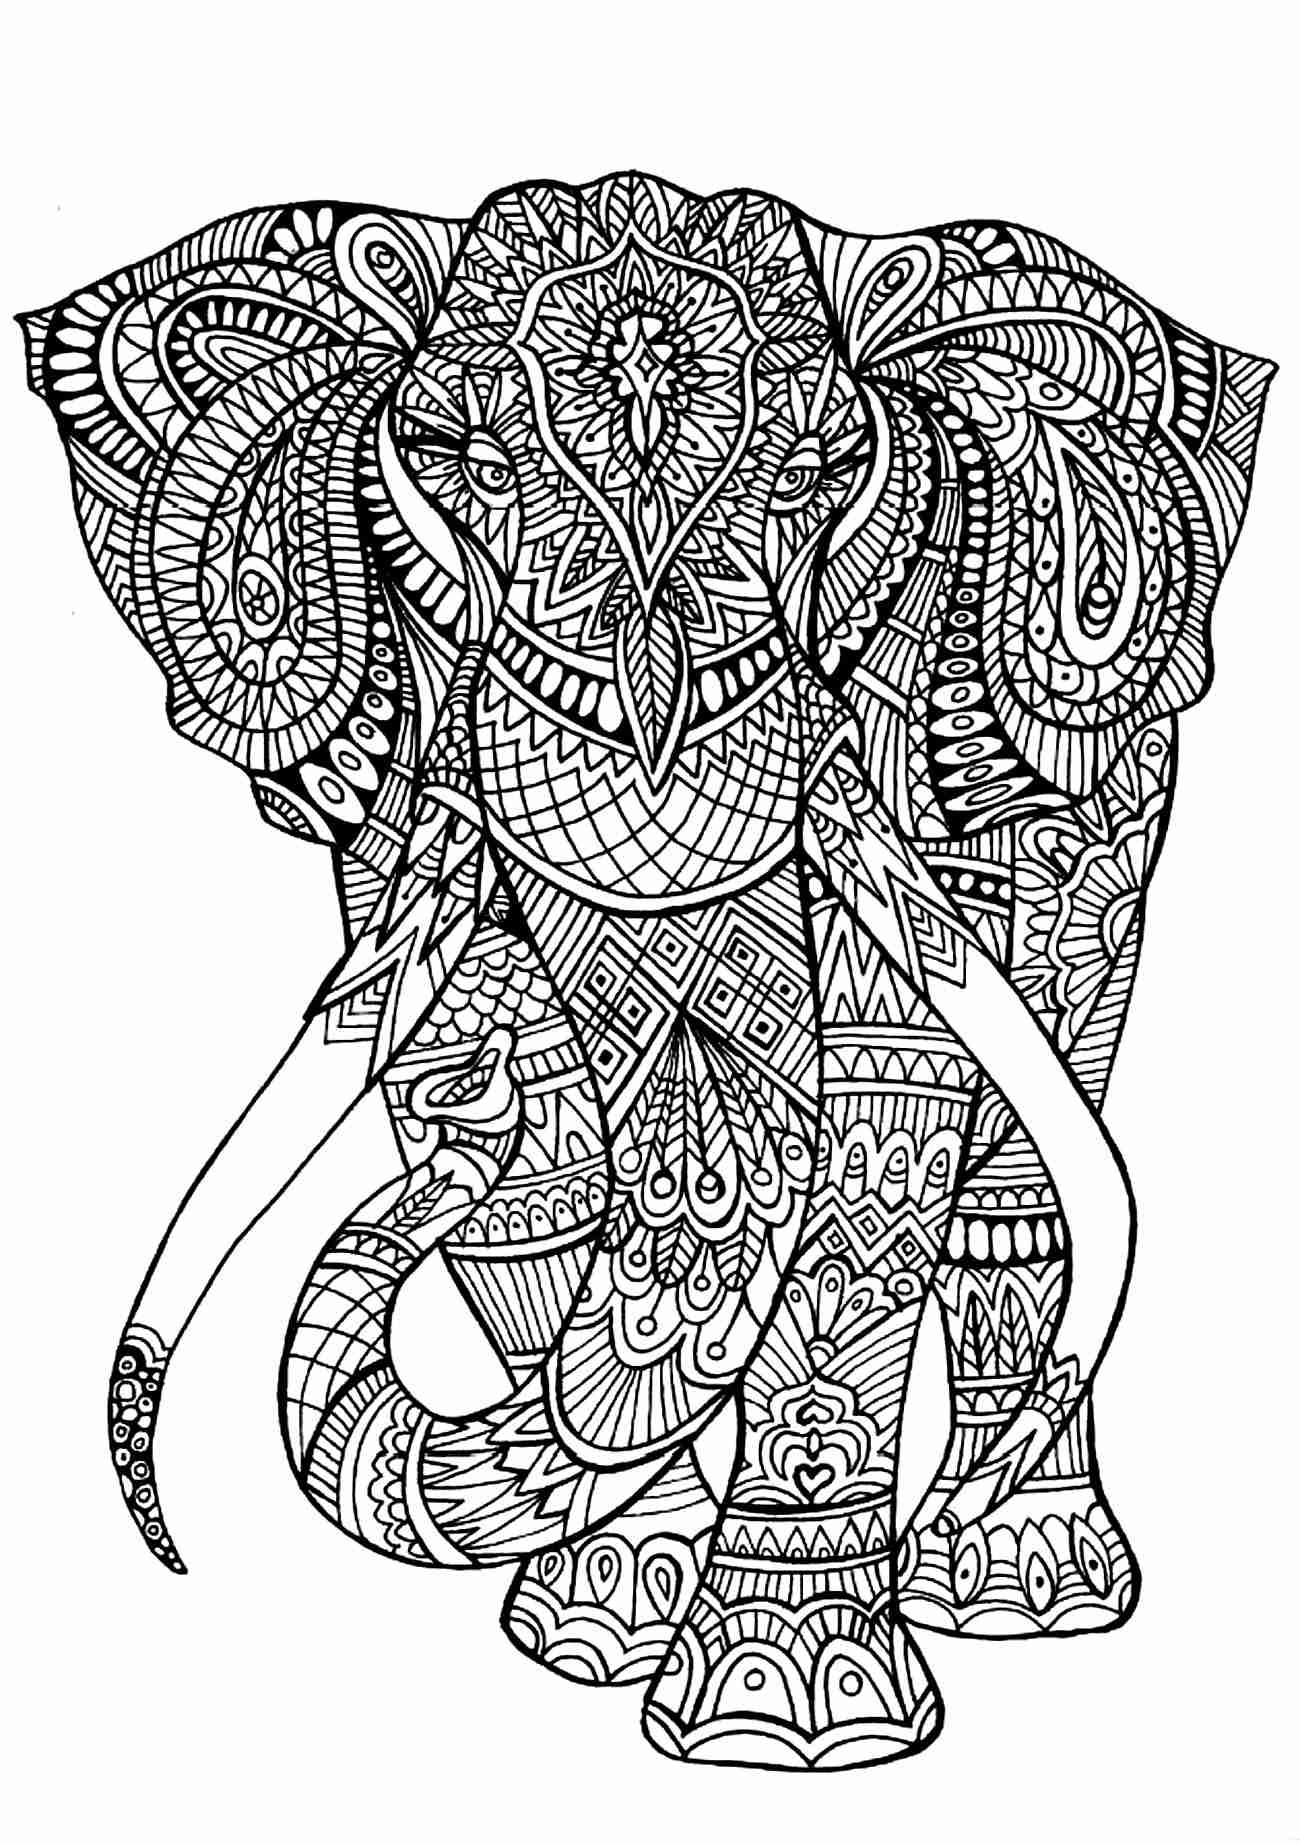 1300x1845 Elephant Patterns Elephants Coloring Pages For Adults Justcolor